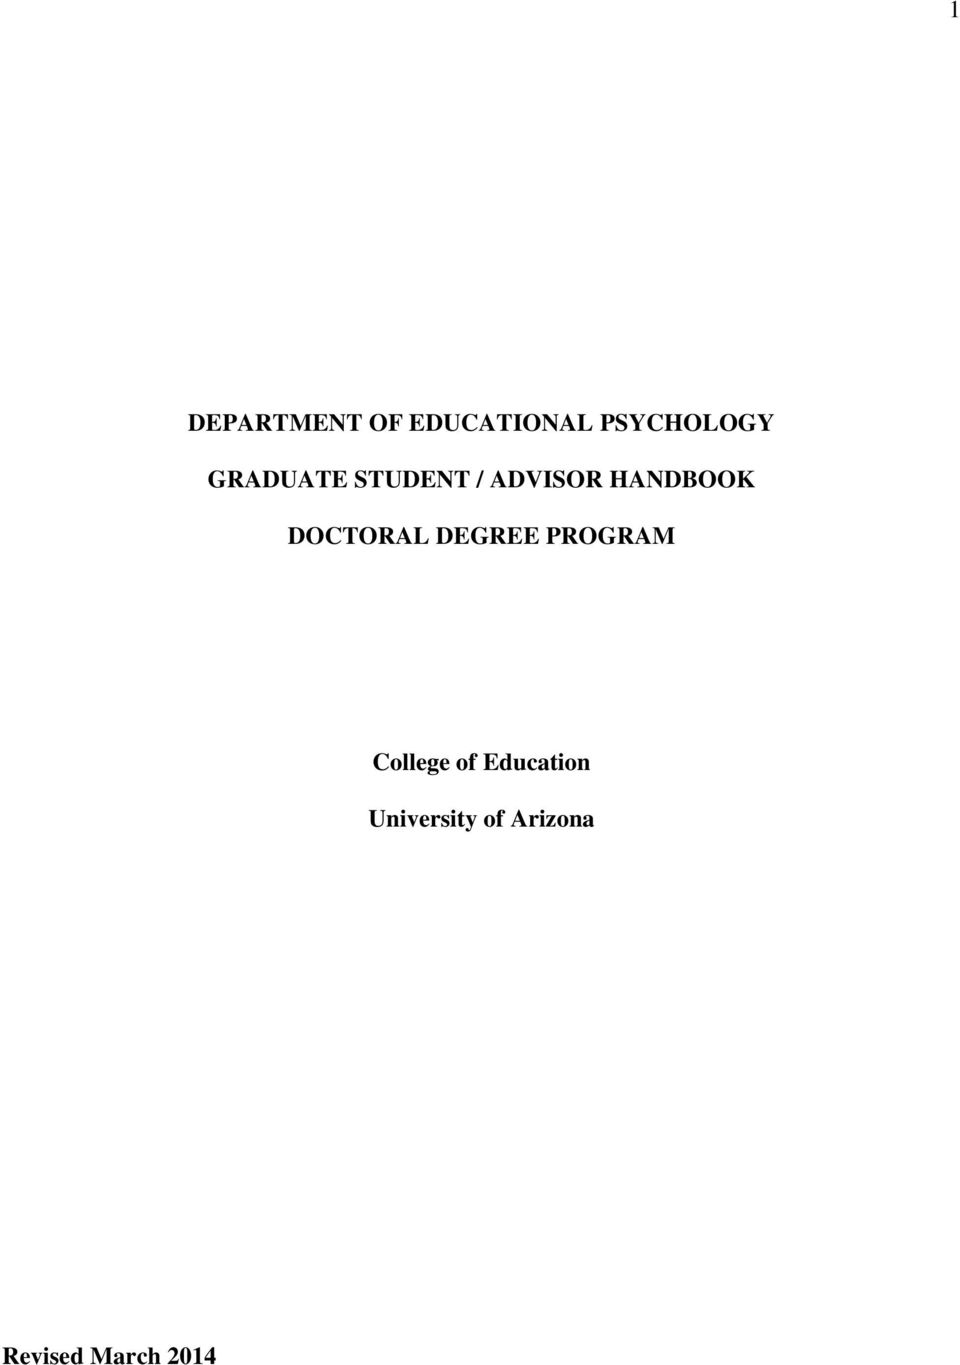 DOCTORAL DEGREE PROGRAM College of